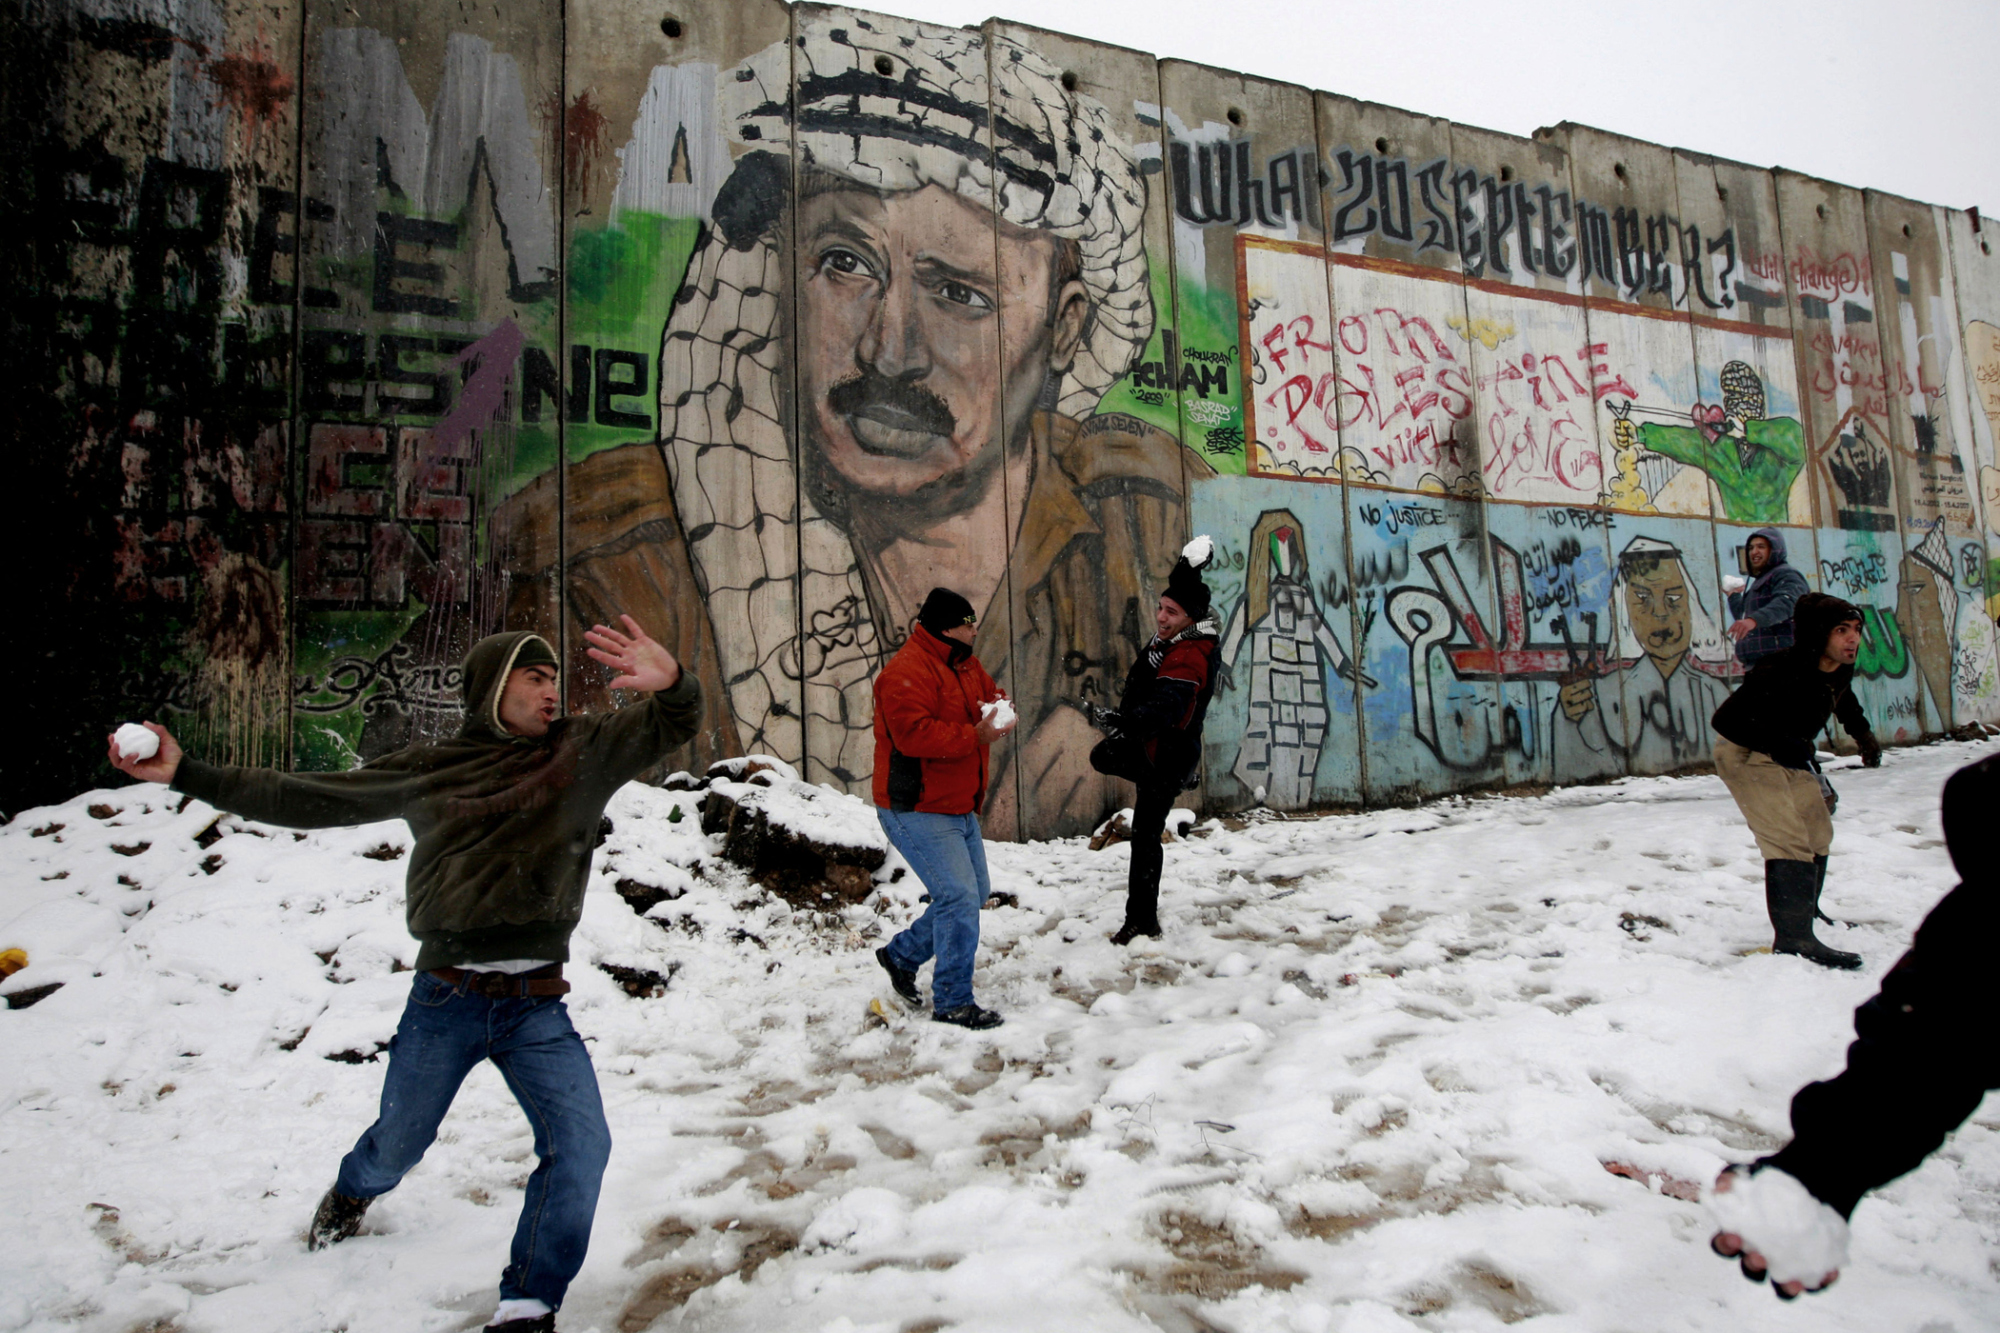 Palestinians play in the snow next to a section of Israel's separation barrier in Qalandia between Jerusalem and the West bank city of Ramallah, Jan. 10, 2013. The storm was the biggest of its kind to hit the region in 30 years.